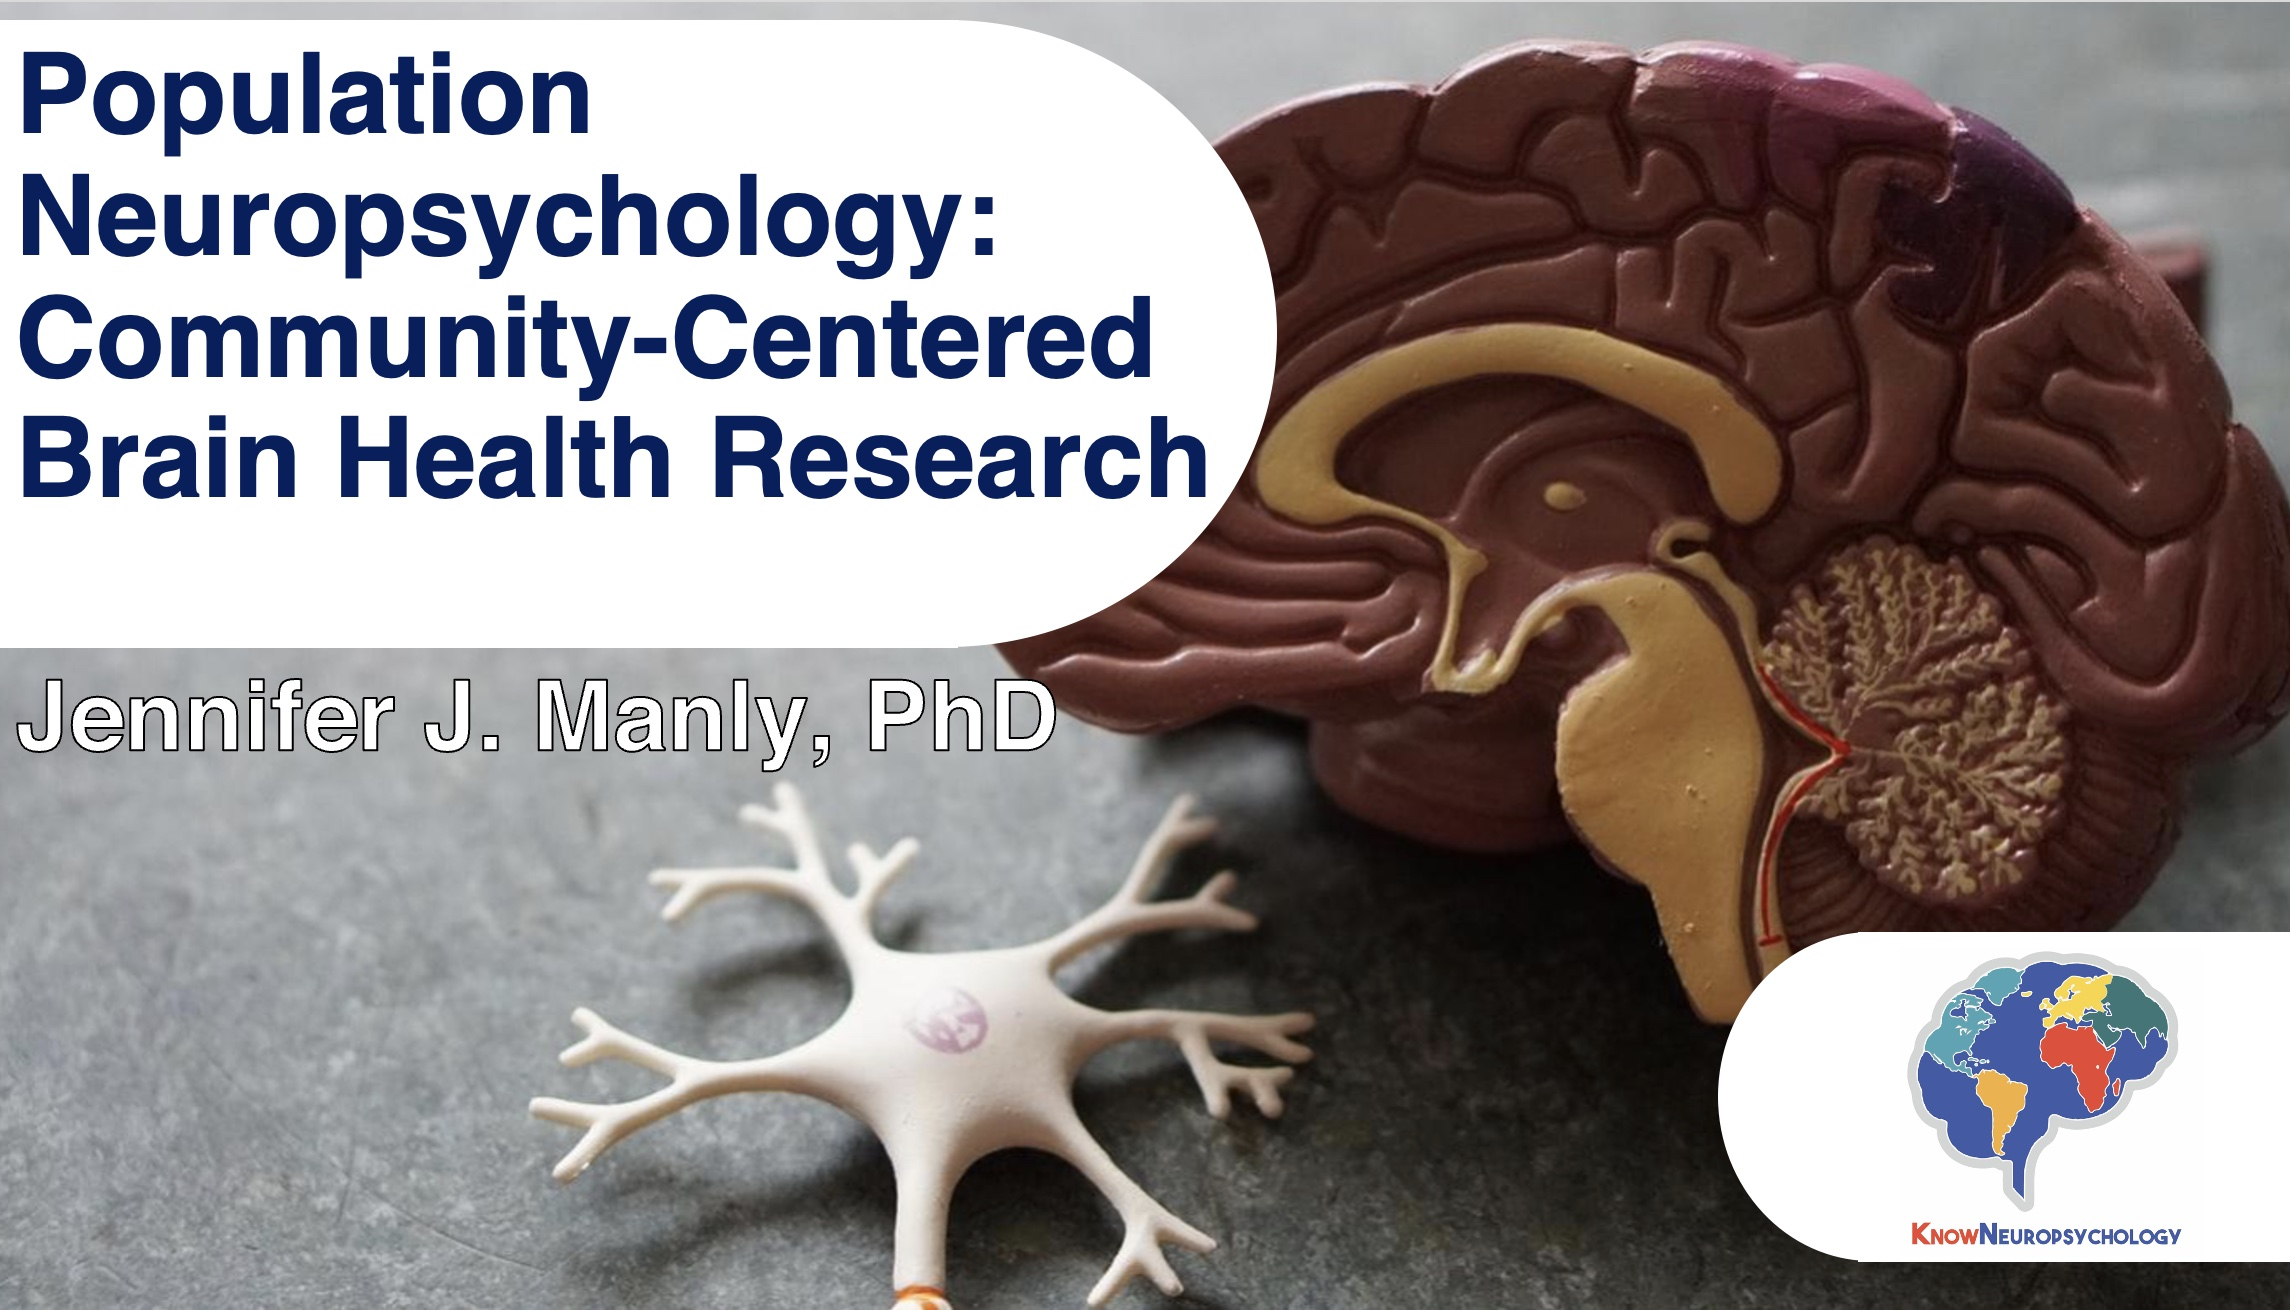 Population Neuropsycholoy: Community Centered Brain Health Research with Dr. Jennifer Manly